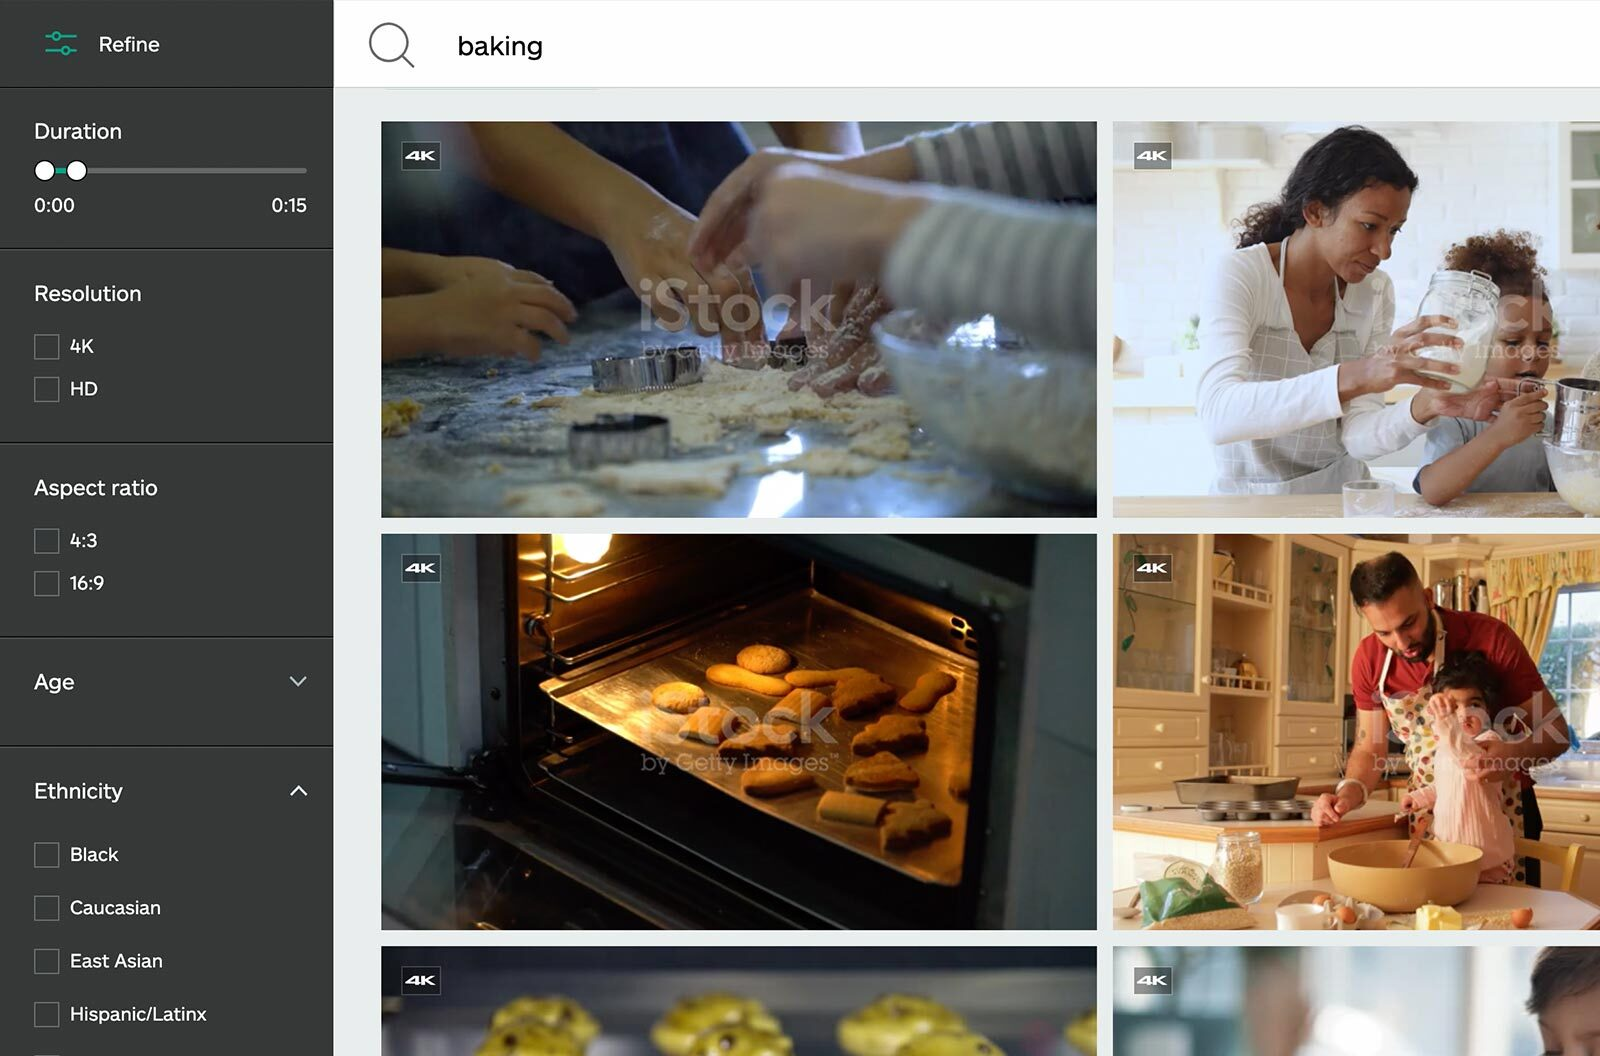 Screenshot of baking video search results